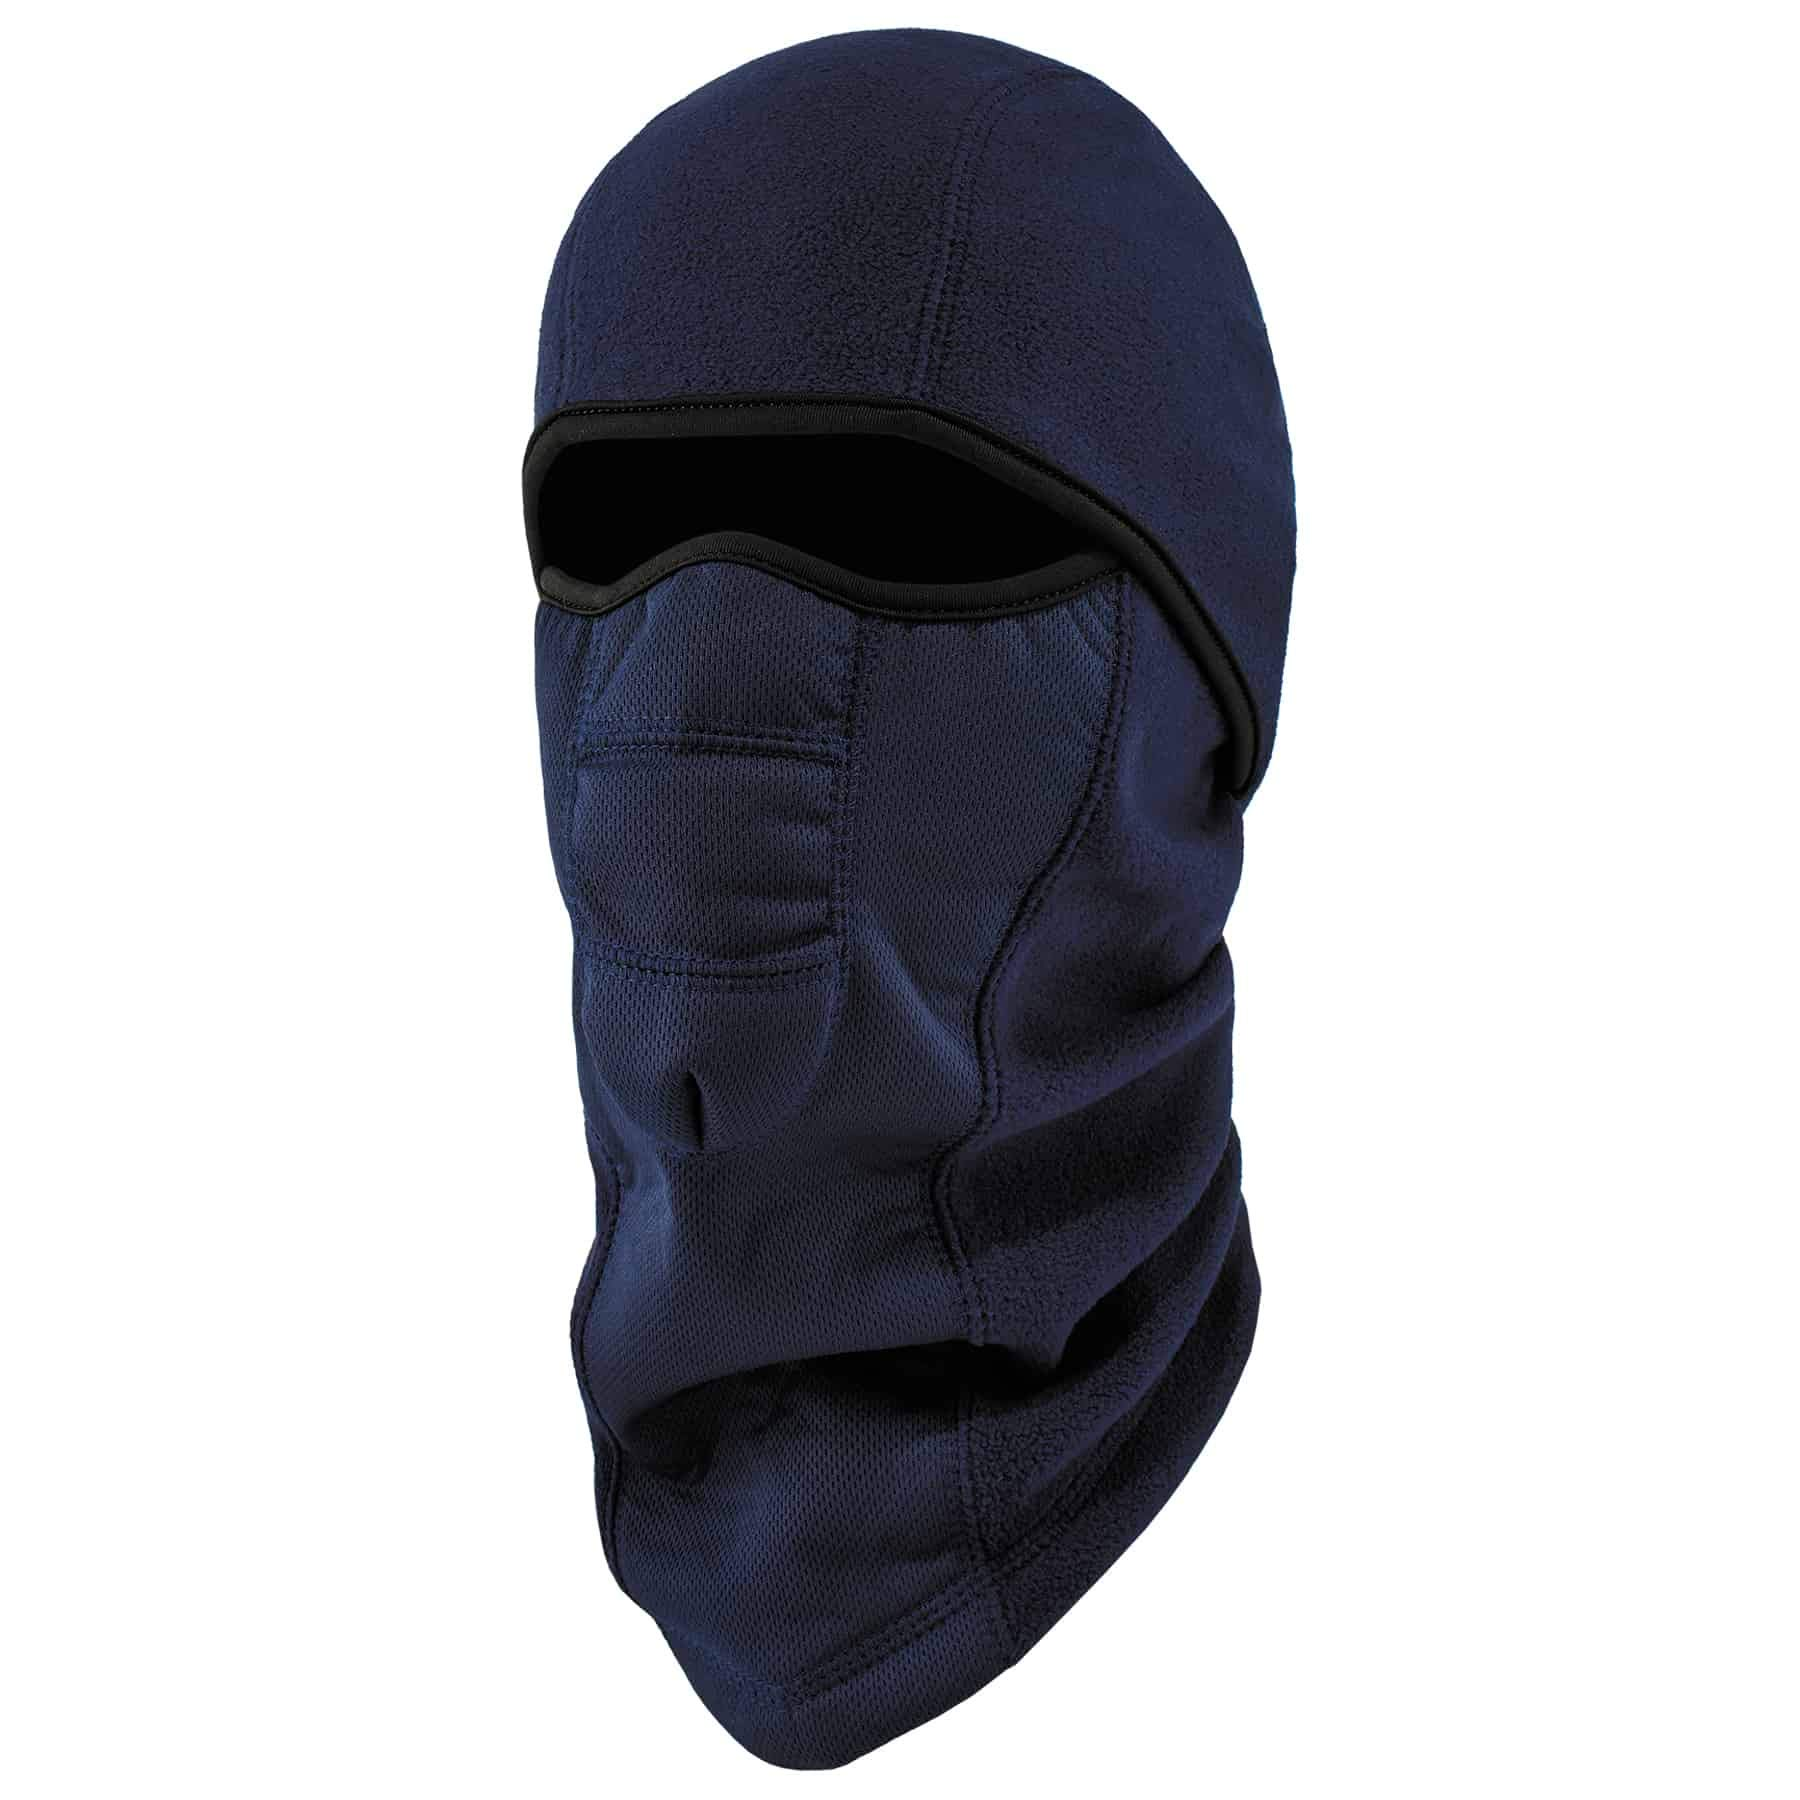 Ergodyne N-Ferno 6823 Winter Balaclava Ski Mask, Wind-Resistant Face Mask, Thermal Fleece by Ergodyne